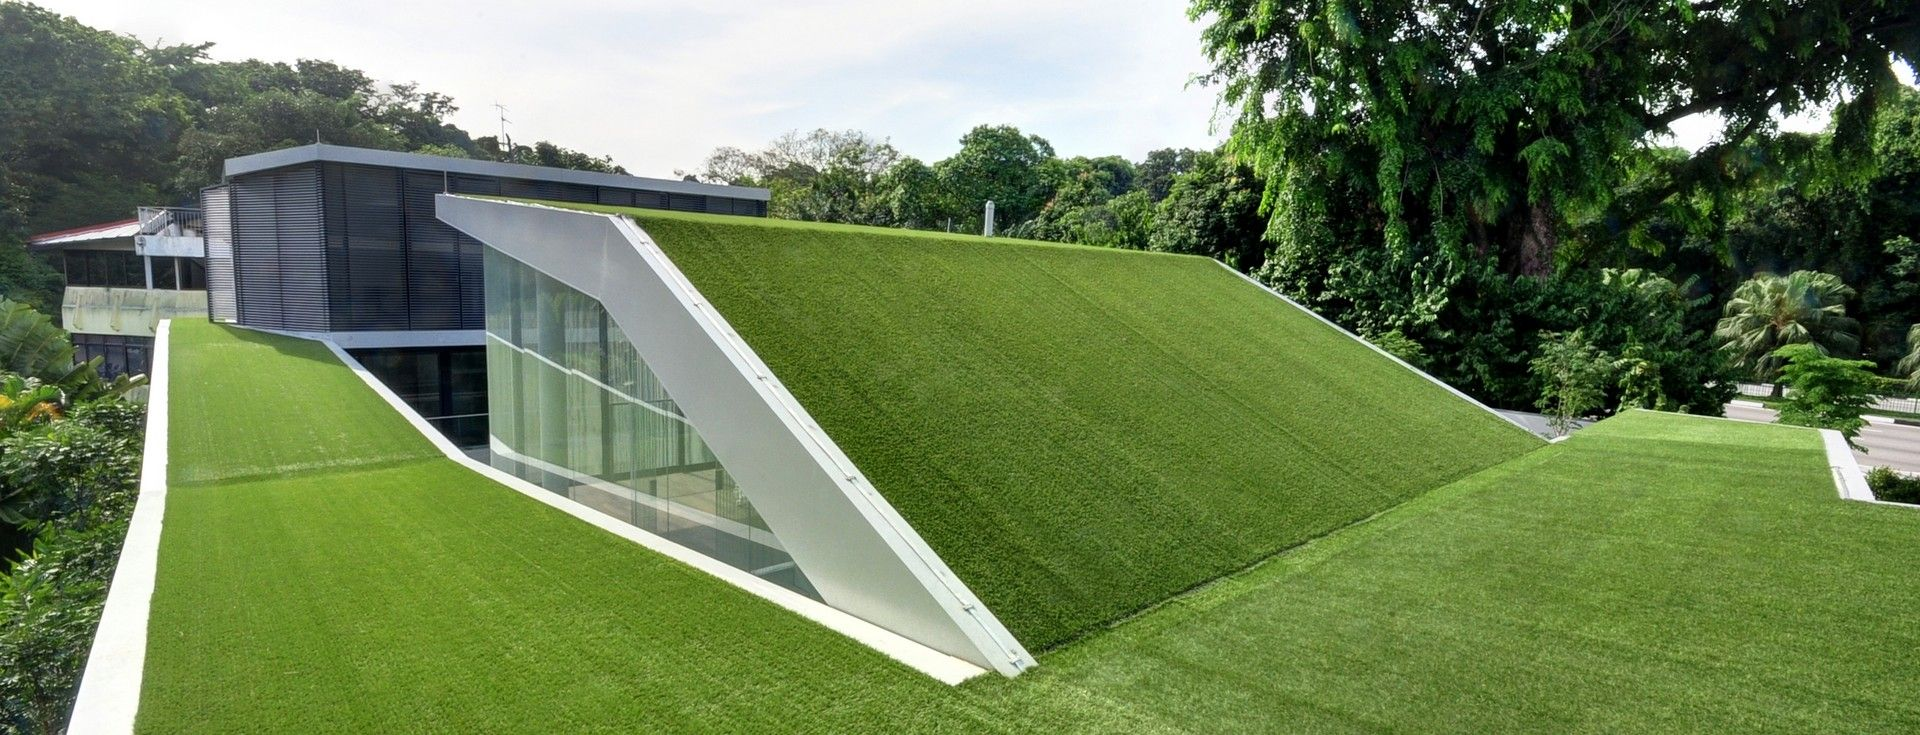 Modern Homes With Turf Grass Google Search Turf House